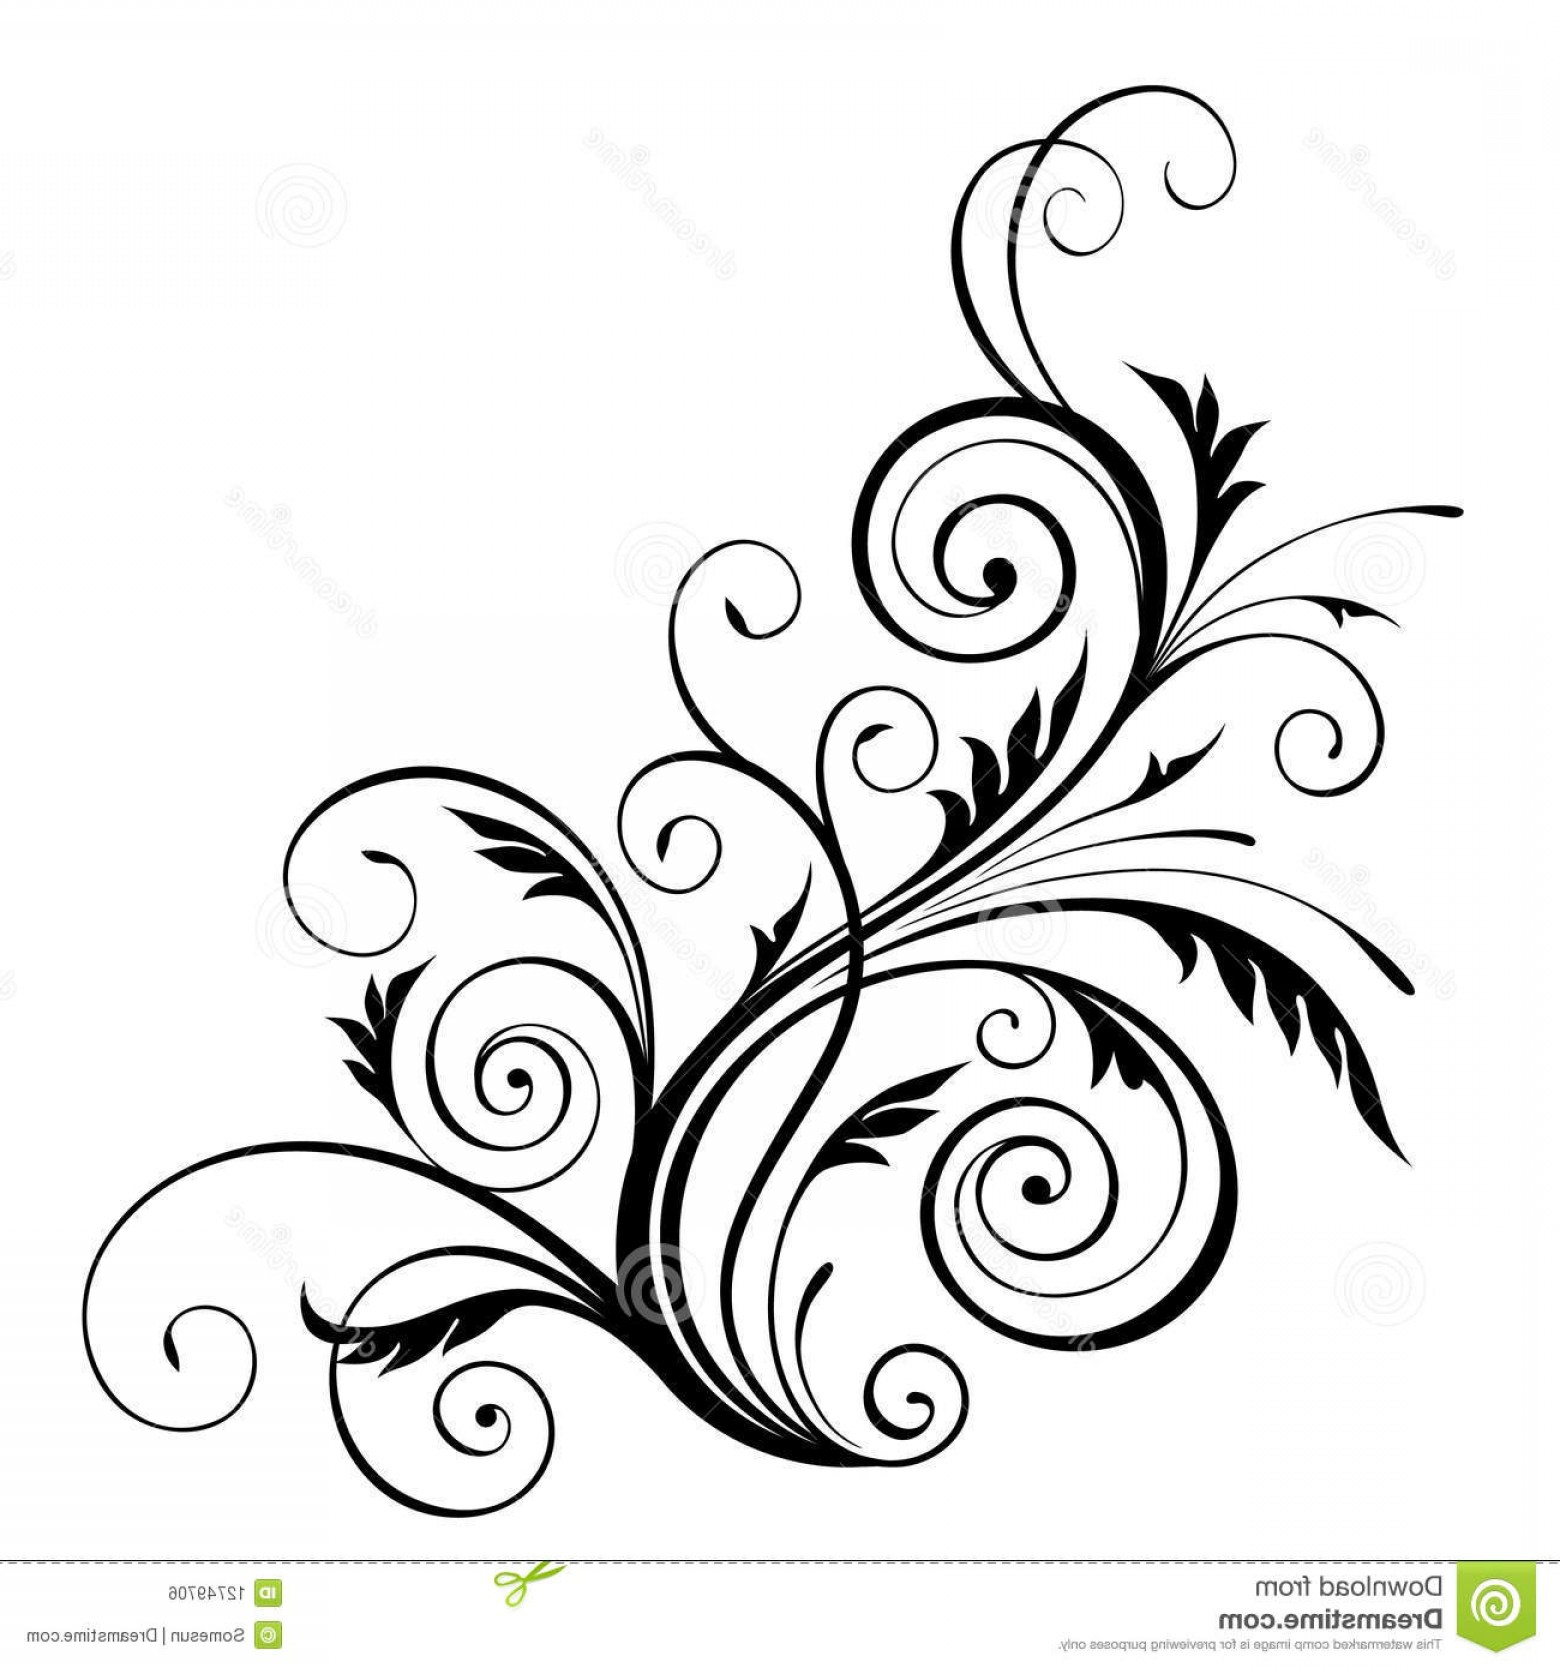 Floral Vector Calligraphy: Royalty Free Stock Image Vector Floral Design Element Image